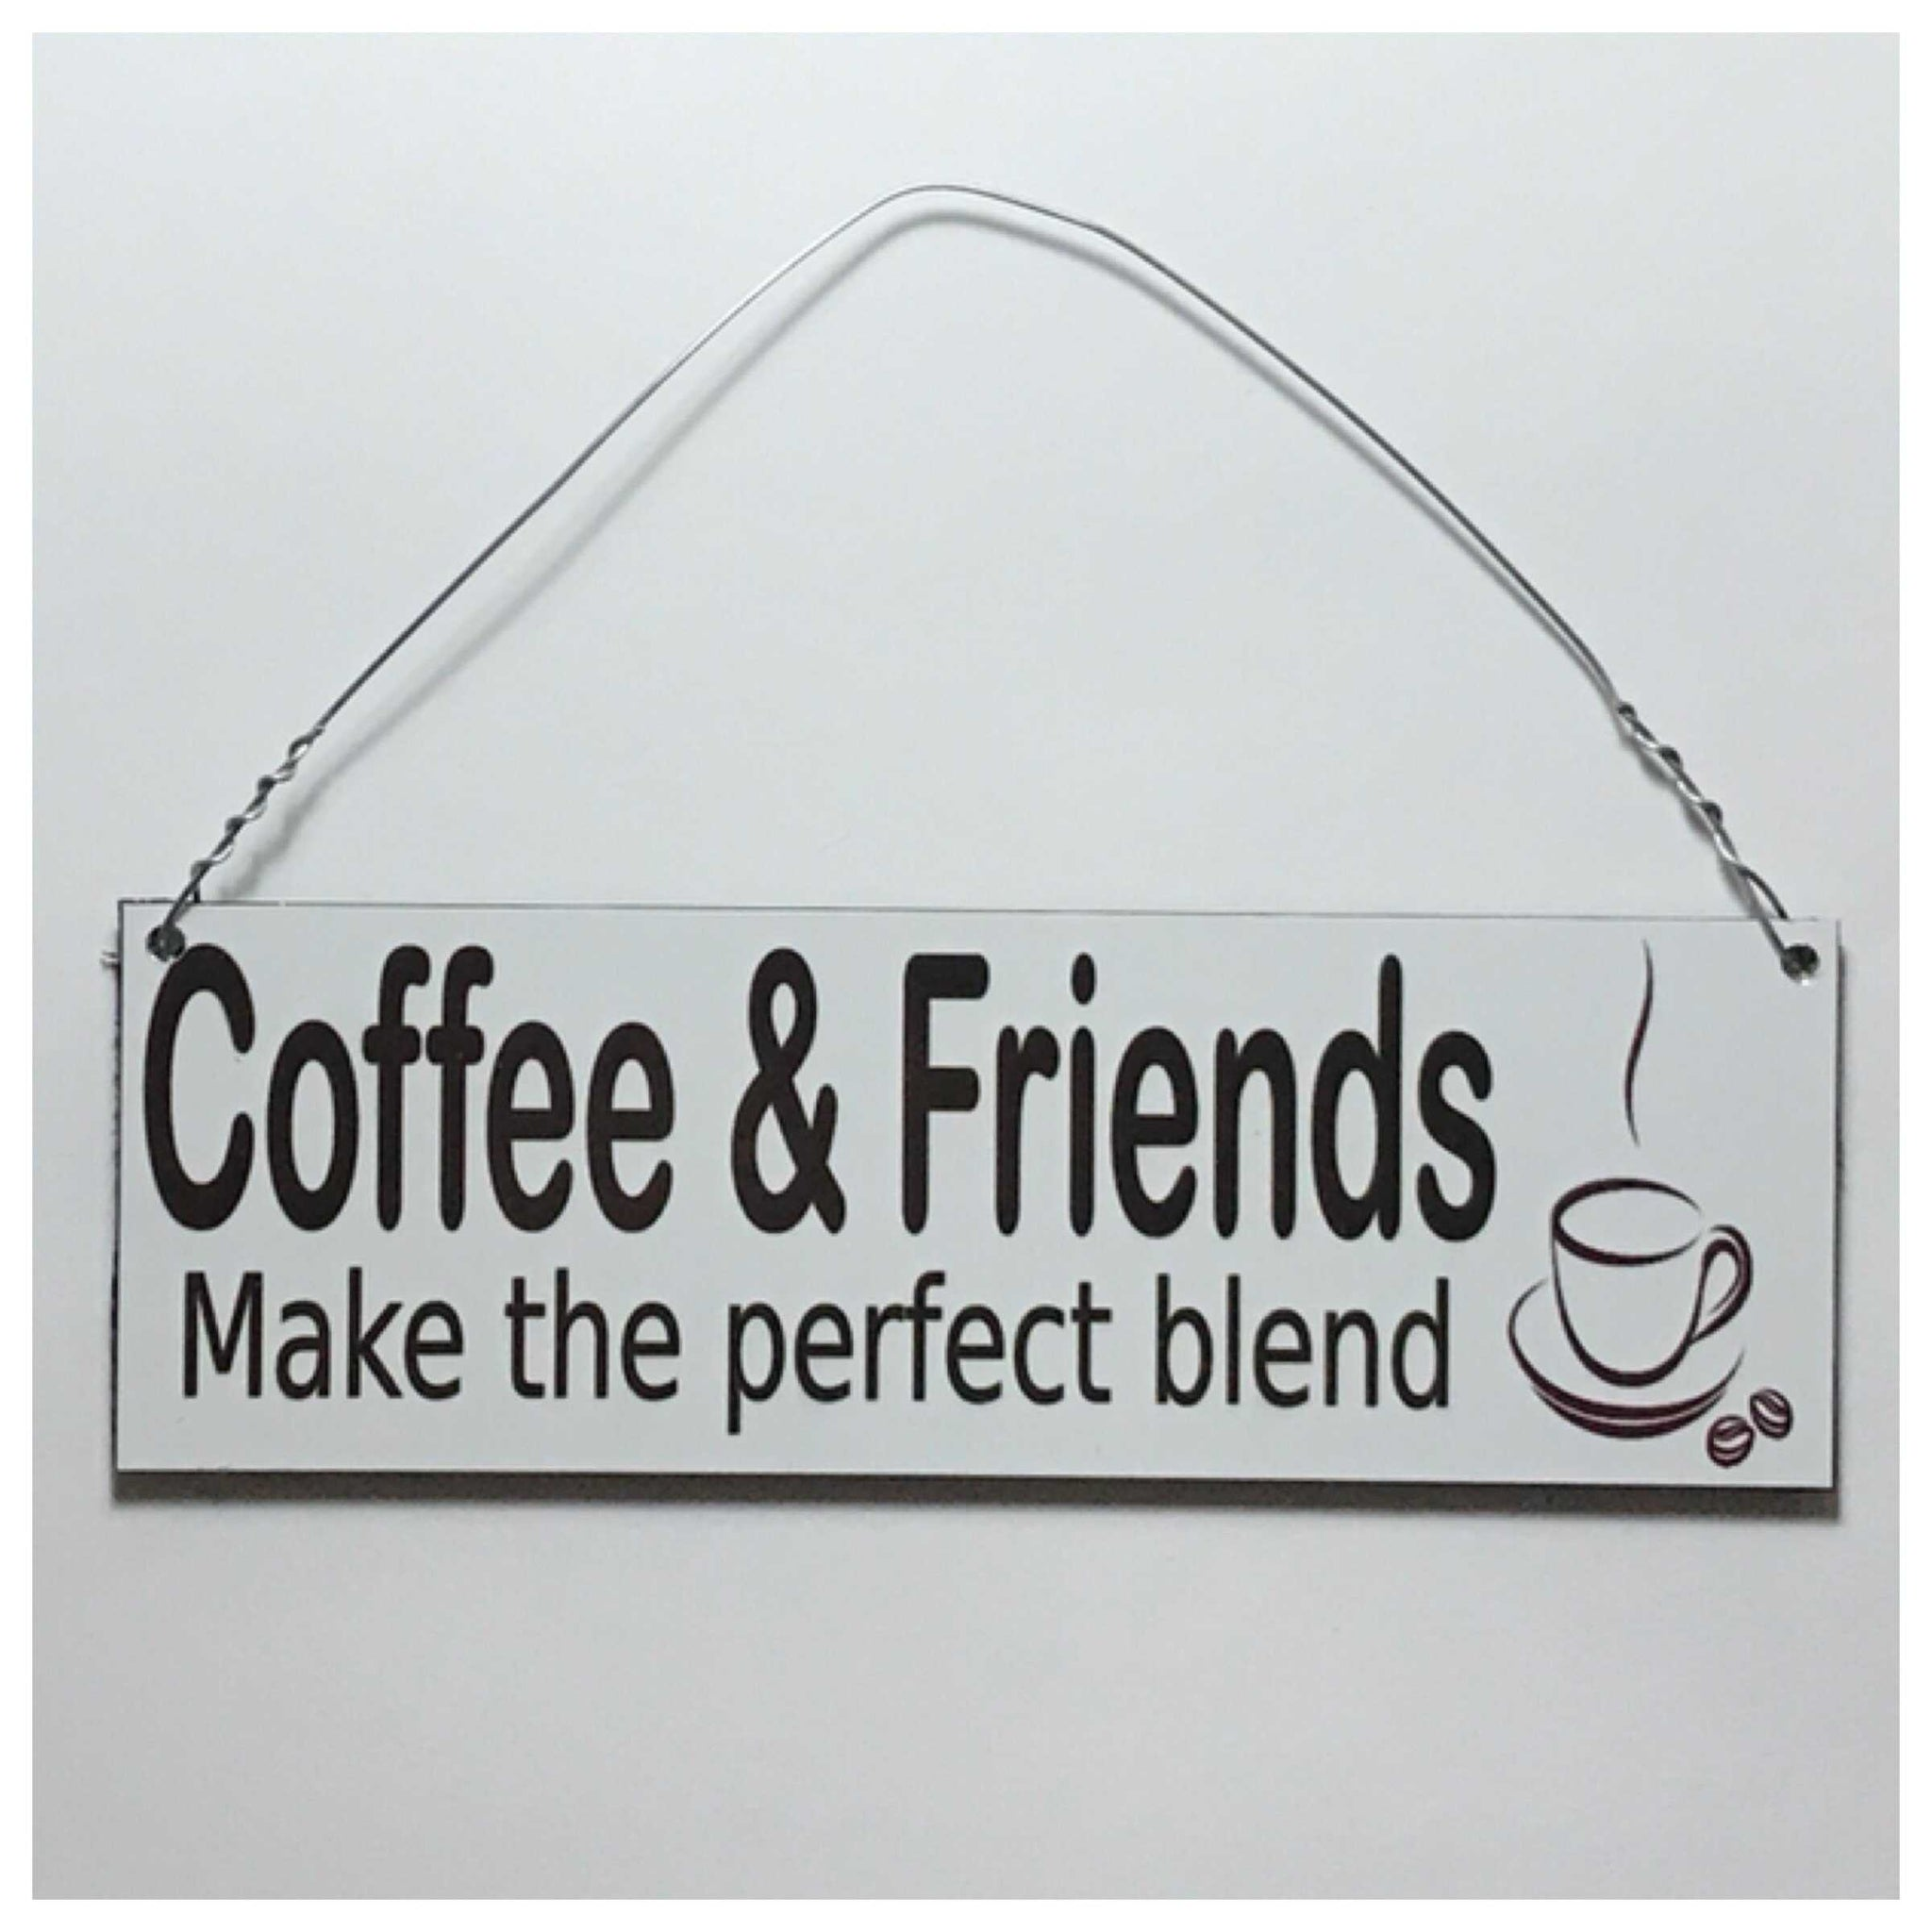 Coffee & Friends Sign - The Renmy Store